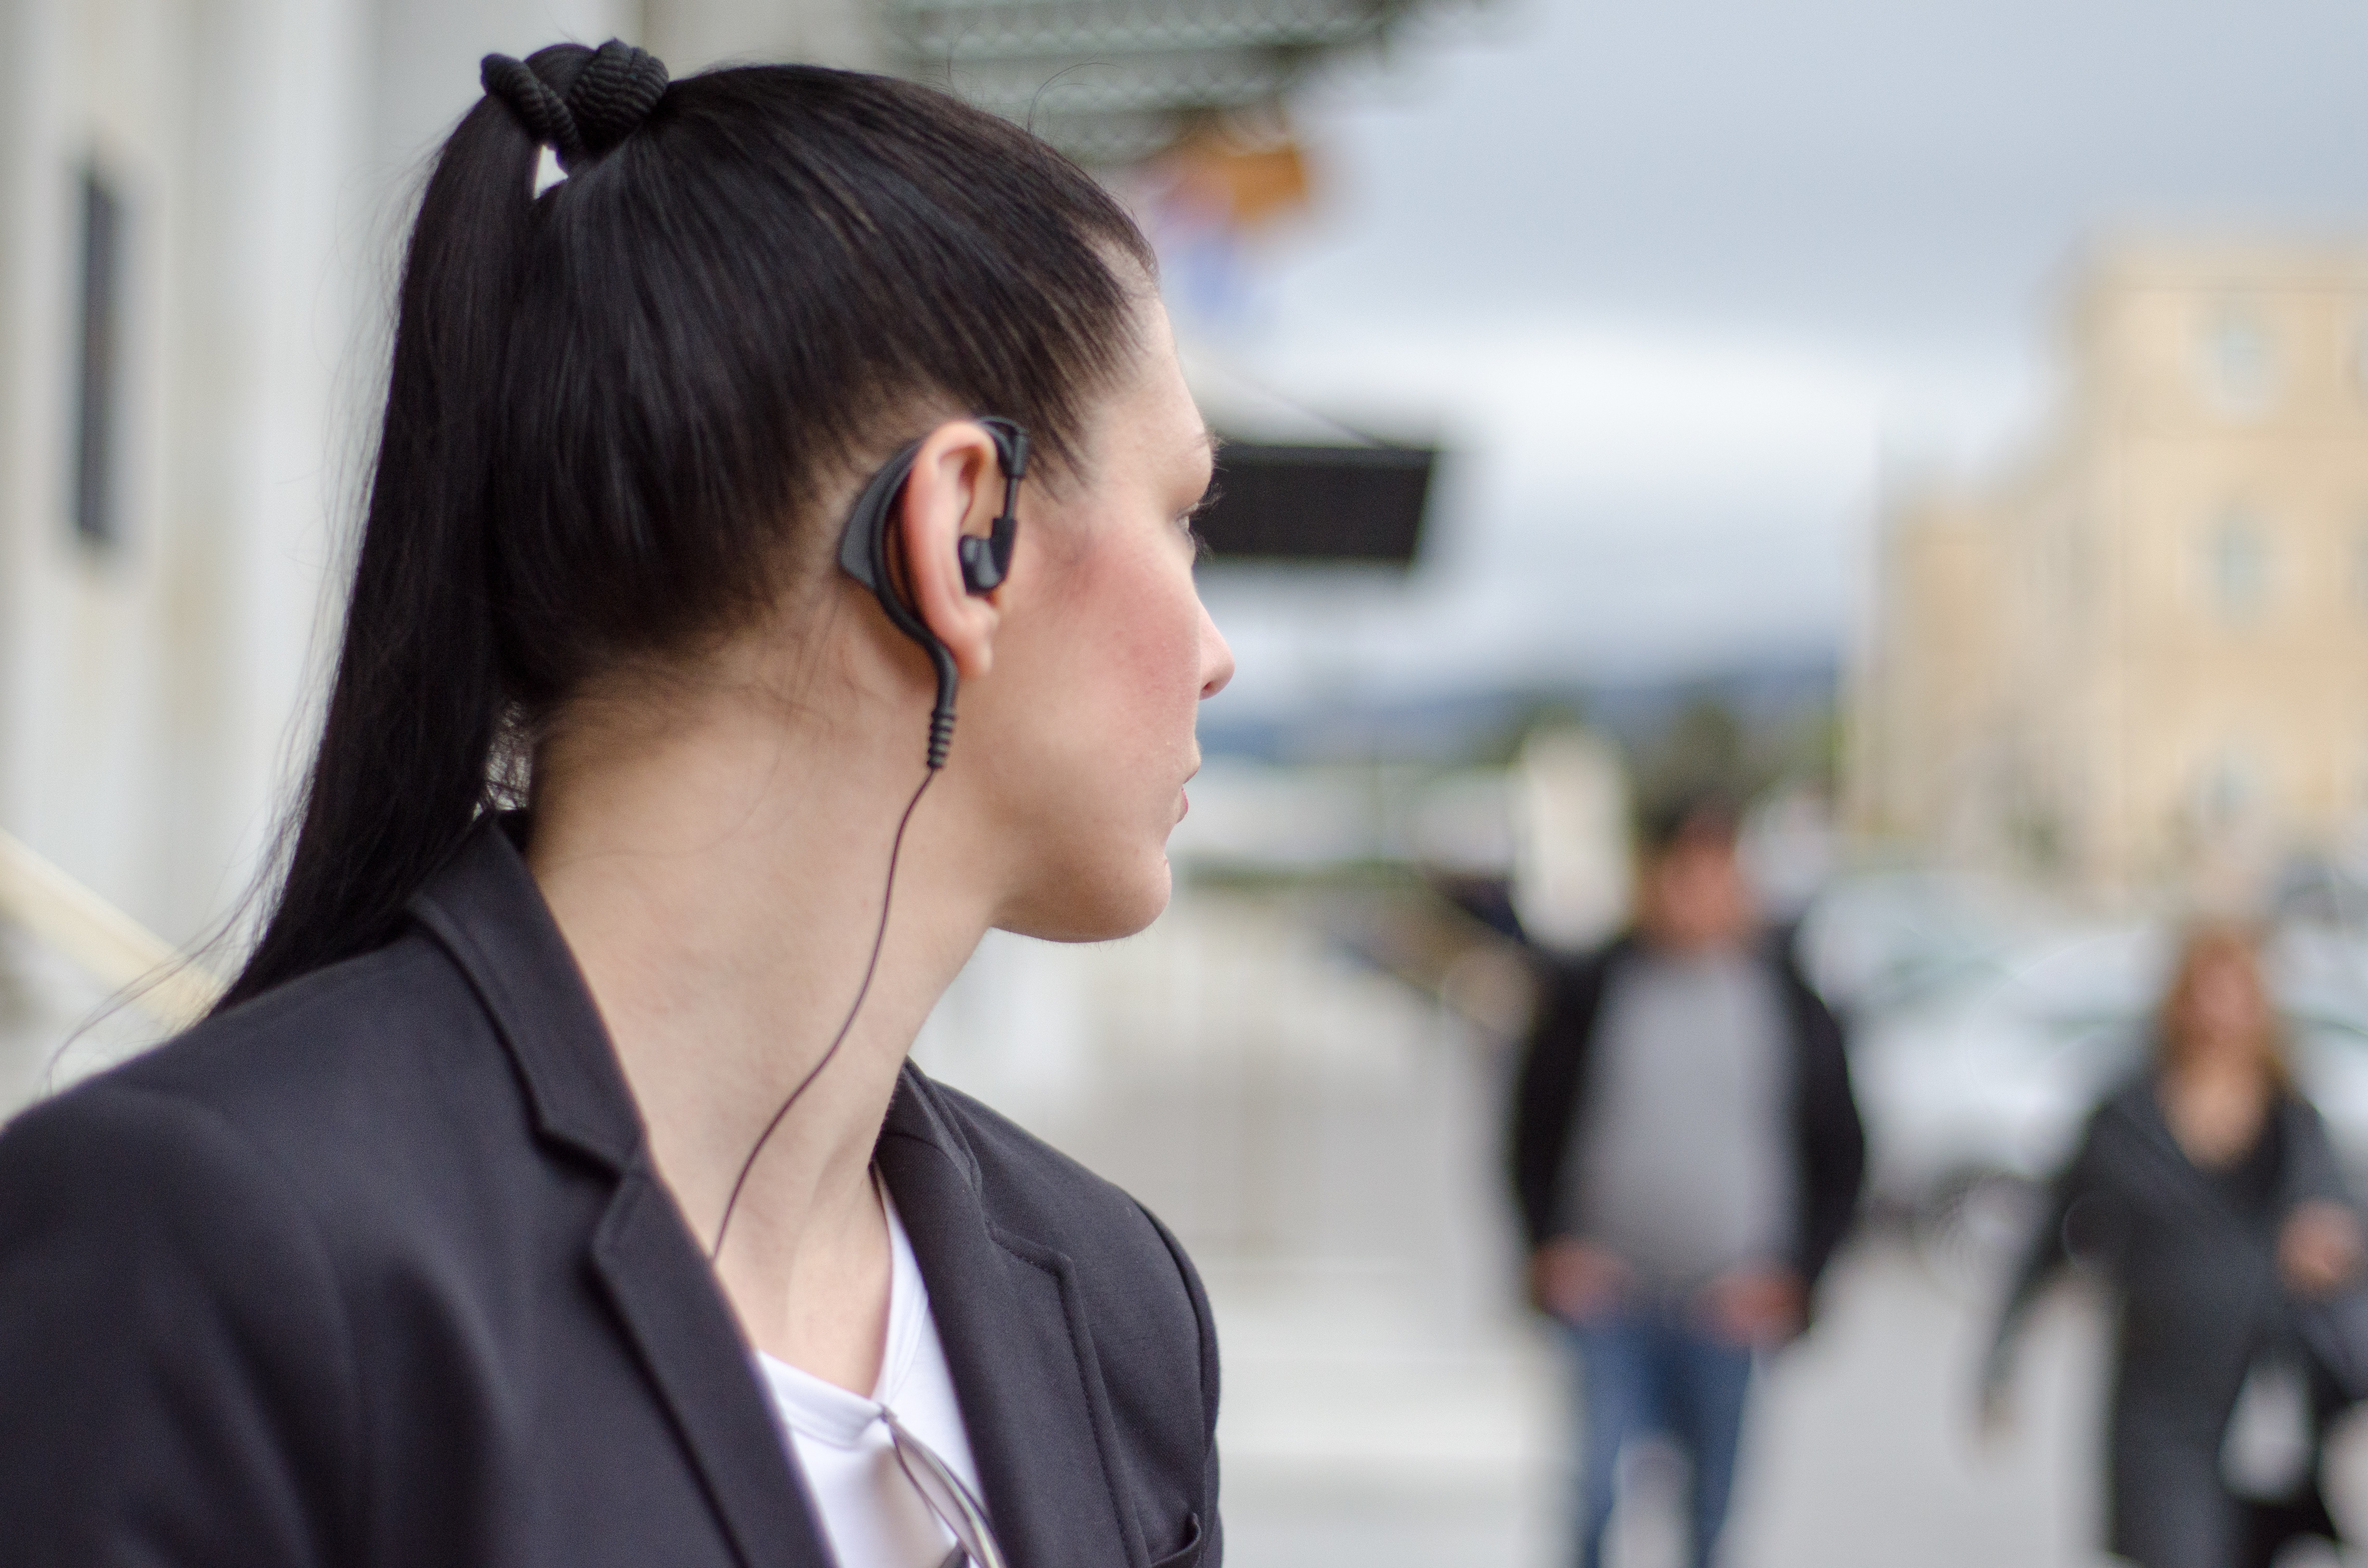 woman bodyguard with headset look at back